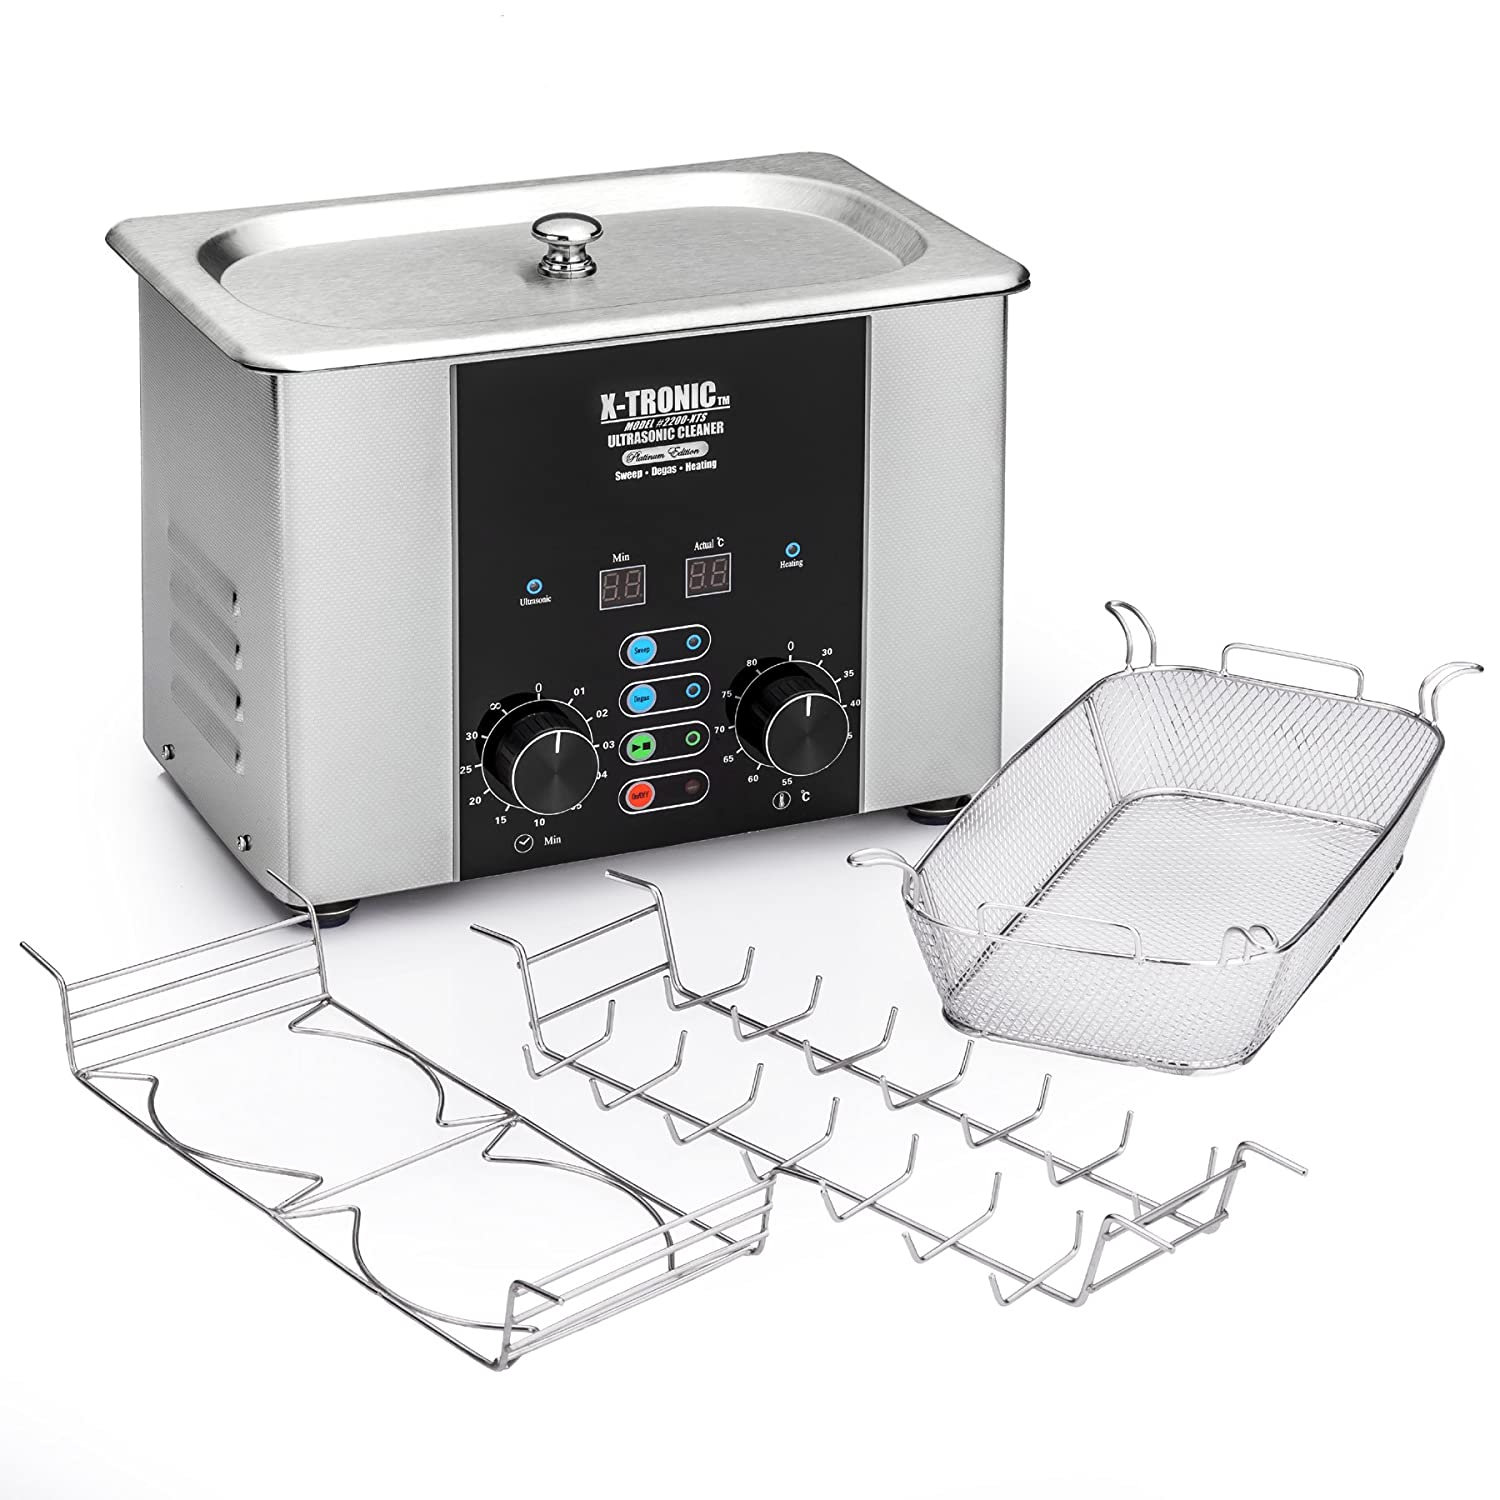 "X-Tronic Model #2200-XTS 2.0 Liter ""Platinum Edition"" Commercial Ultrasonic Cleaner with Time/Temp LED Displays, Sweep & Degas Controls, S/S Cleaning Basket, Wire Rack Holder & Wire Beaker Holder"